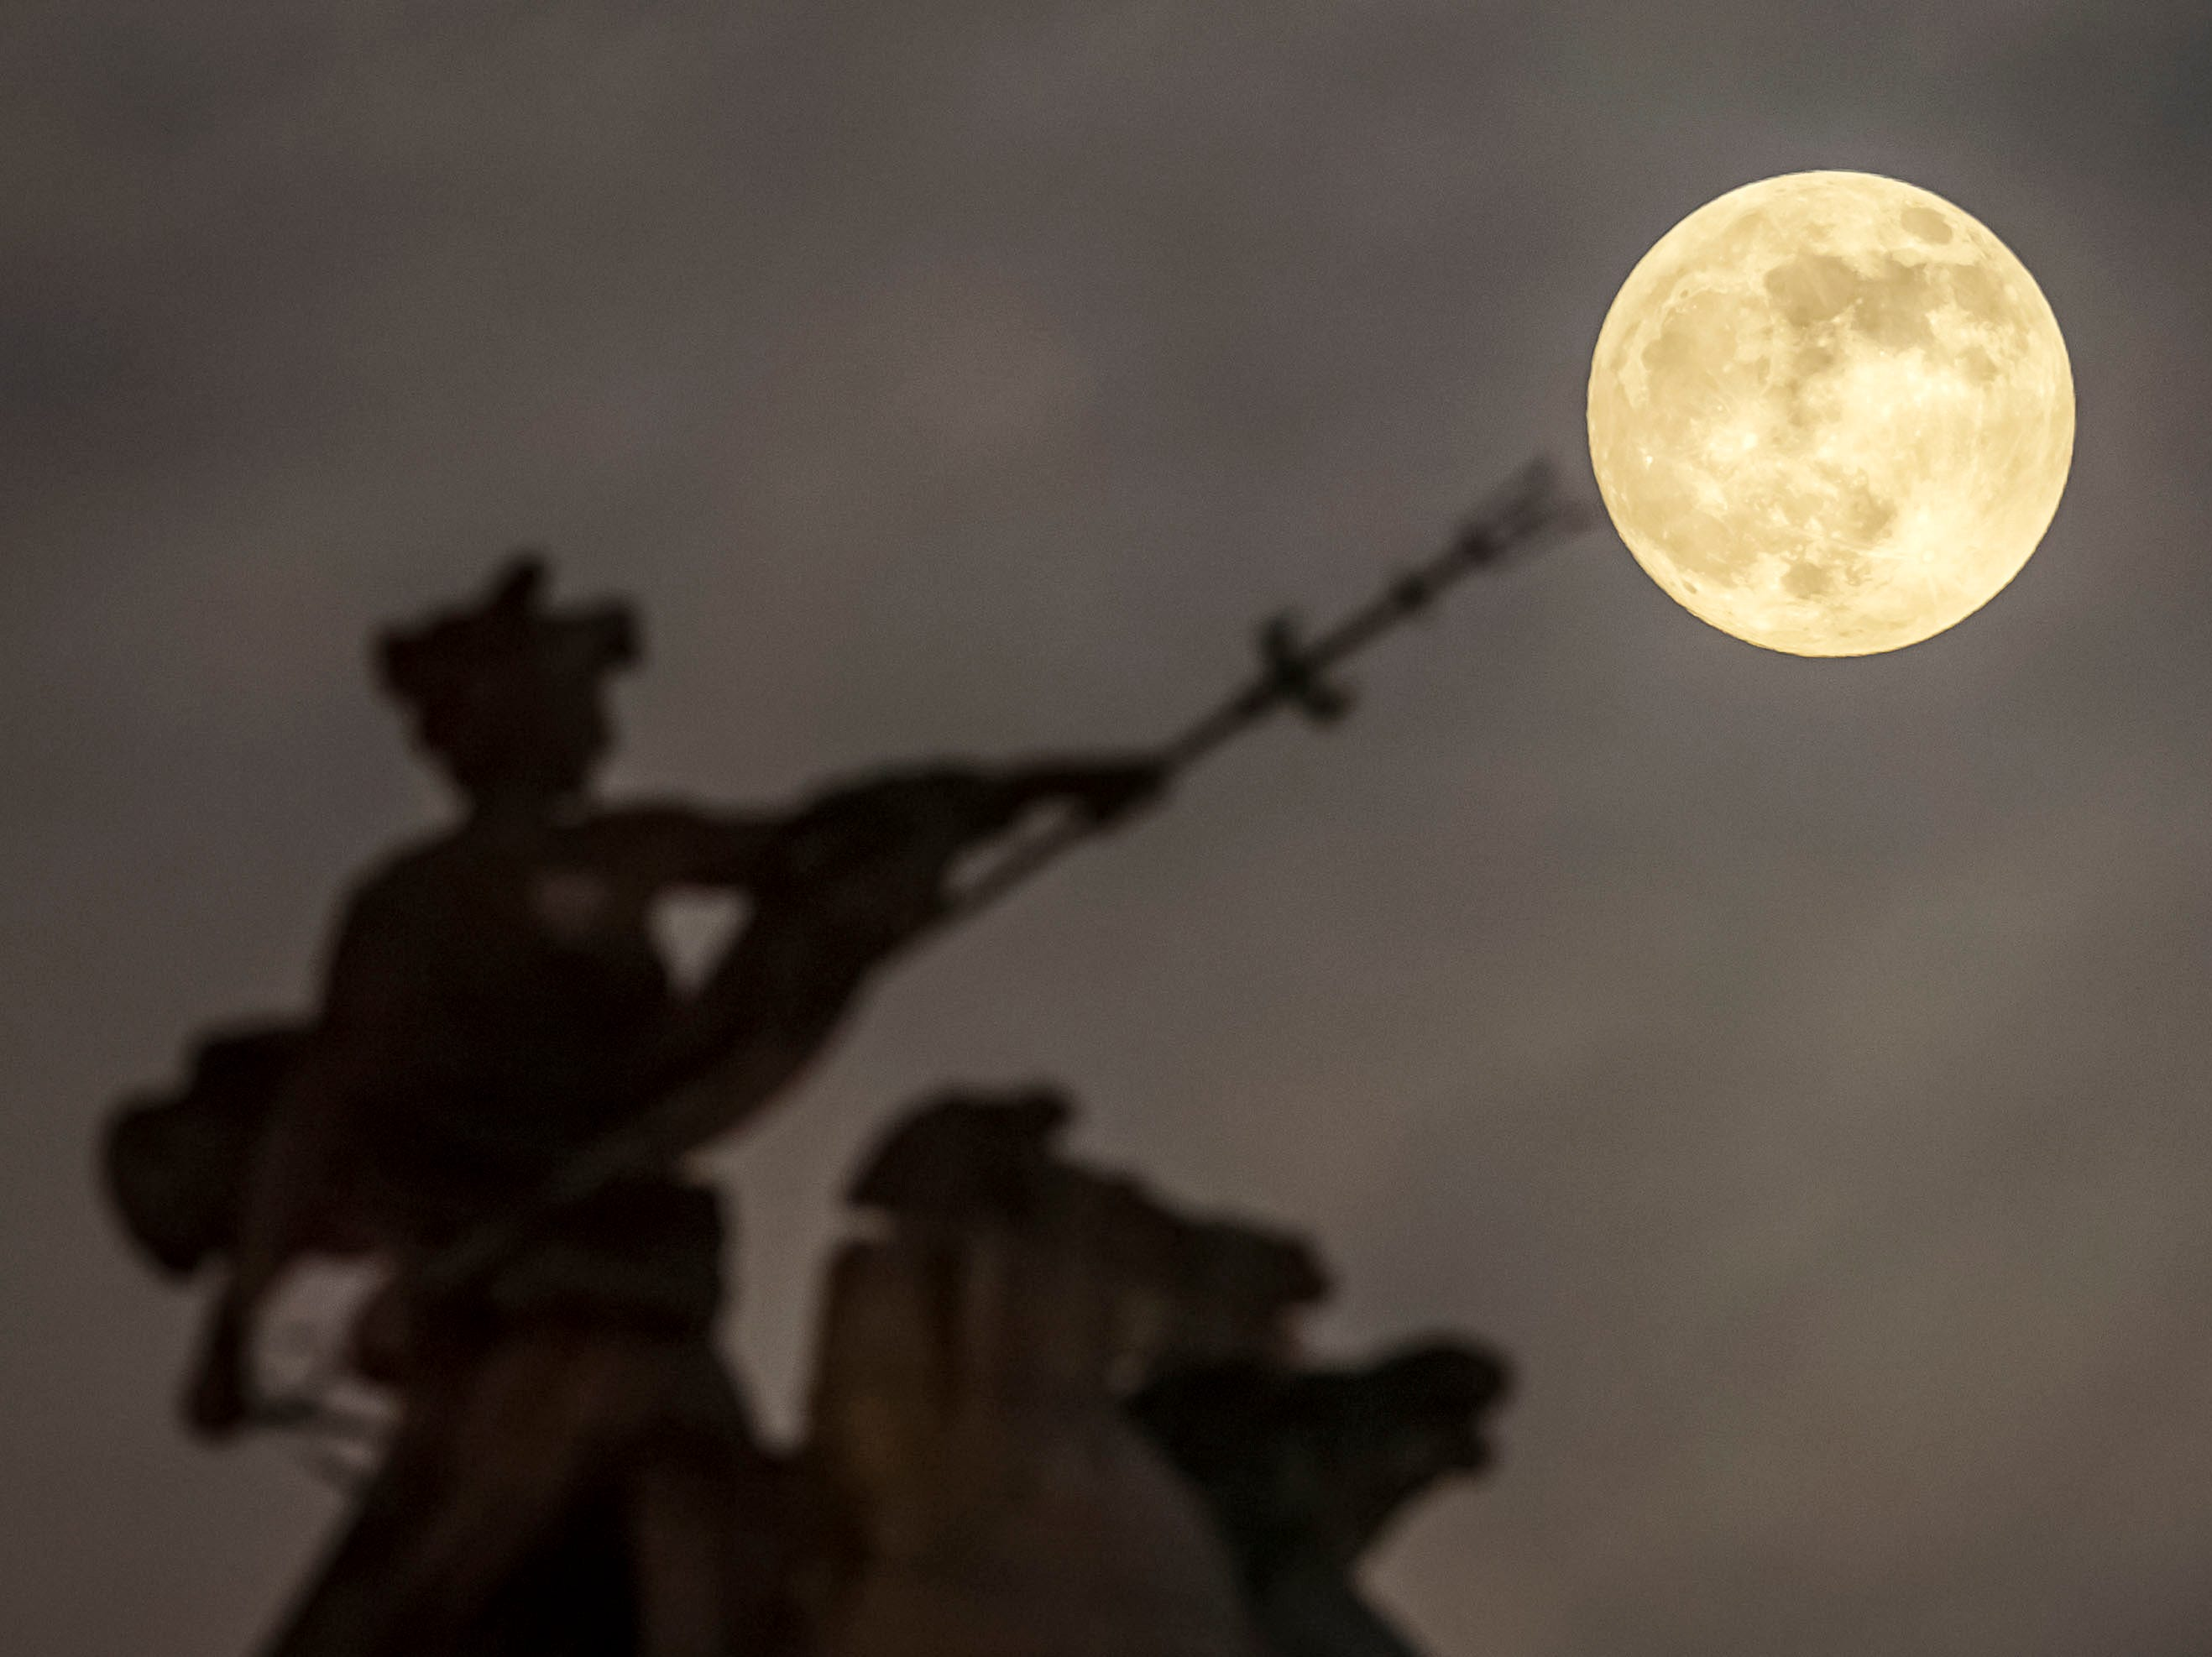 A super moon rises above the 'Maritime Prowess' by Albert Hemstock Hodge on the Guild Hall ahead of the Lunar Eclipse, in Hull, England, Sunday, Jan. 20, 2019.